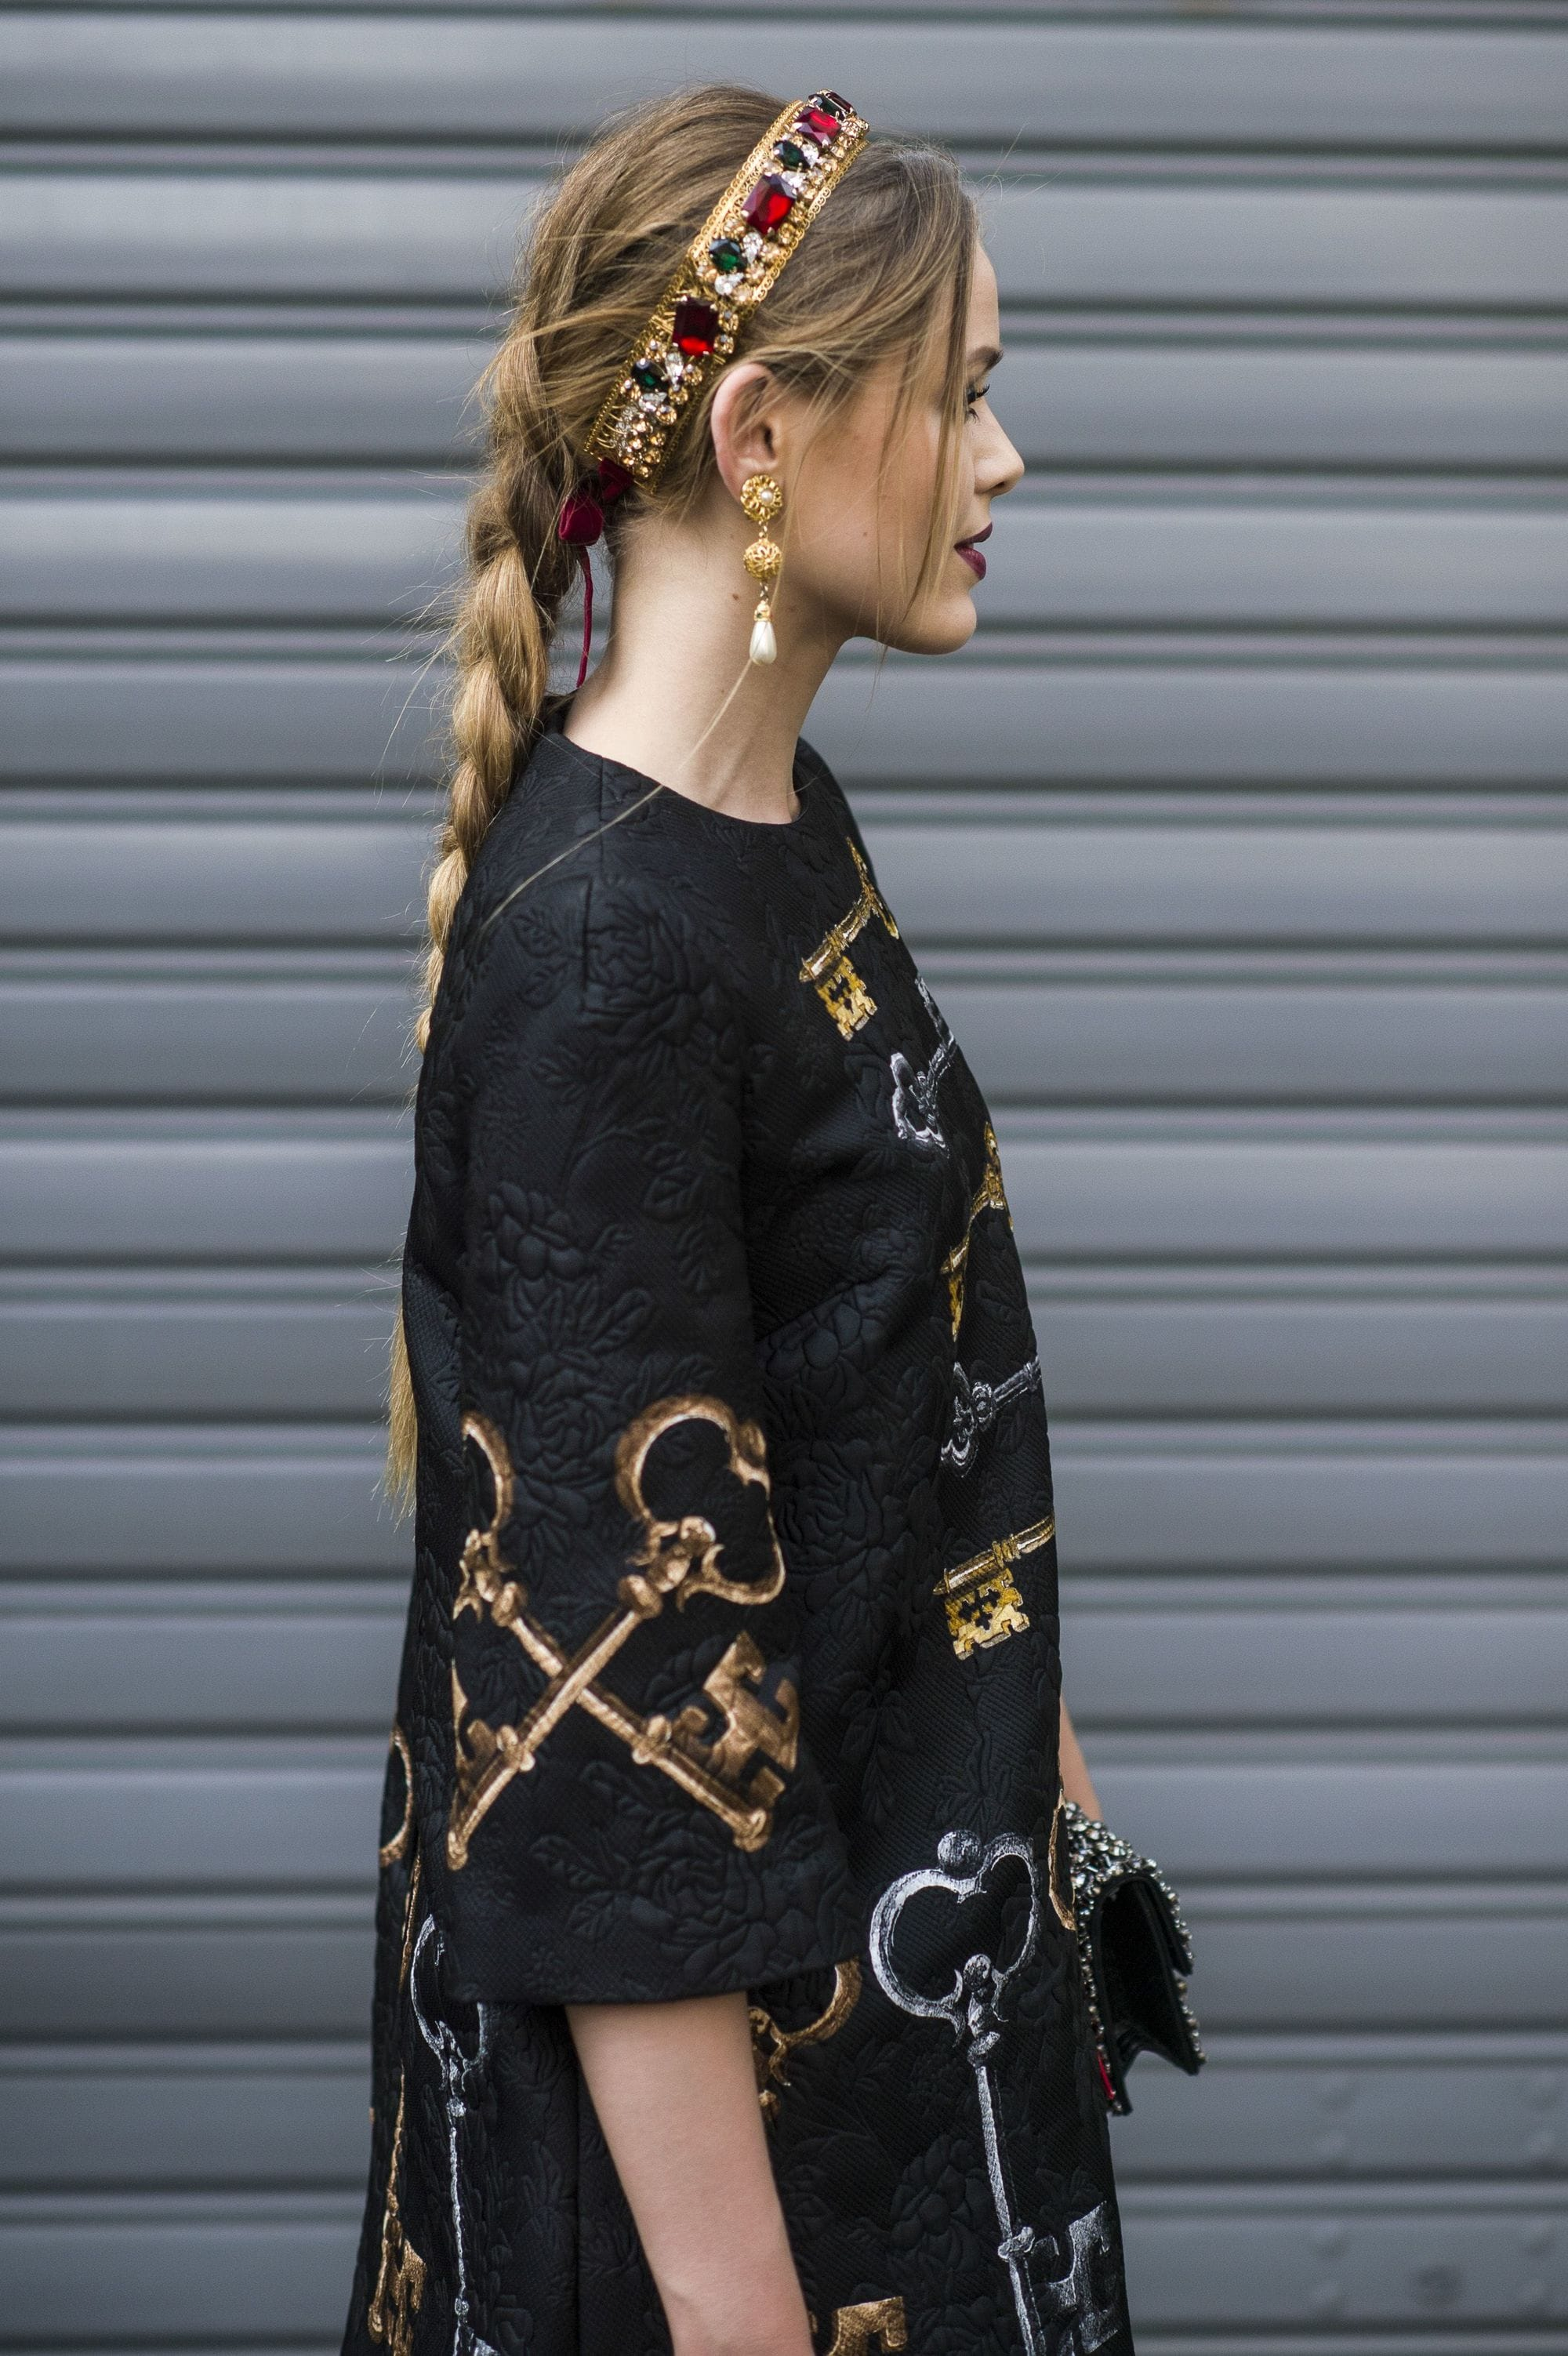 Headband and bandana hairstyles: Side view of a woman with long golden light brown hair styled in a single braid, with a headband and black embroidered dress.